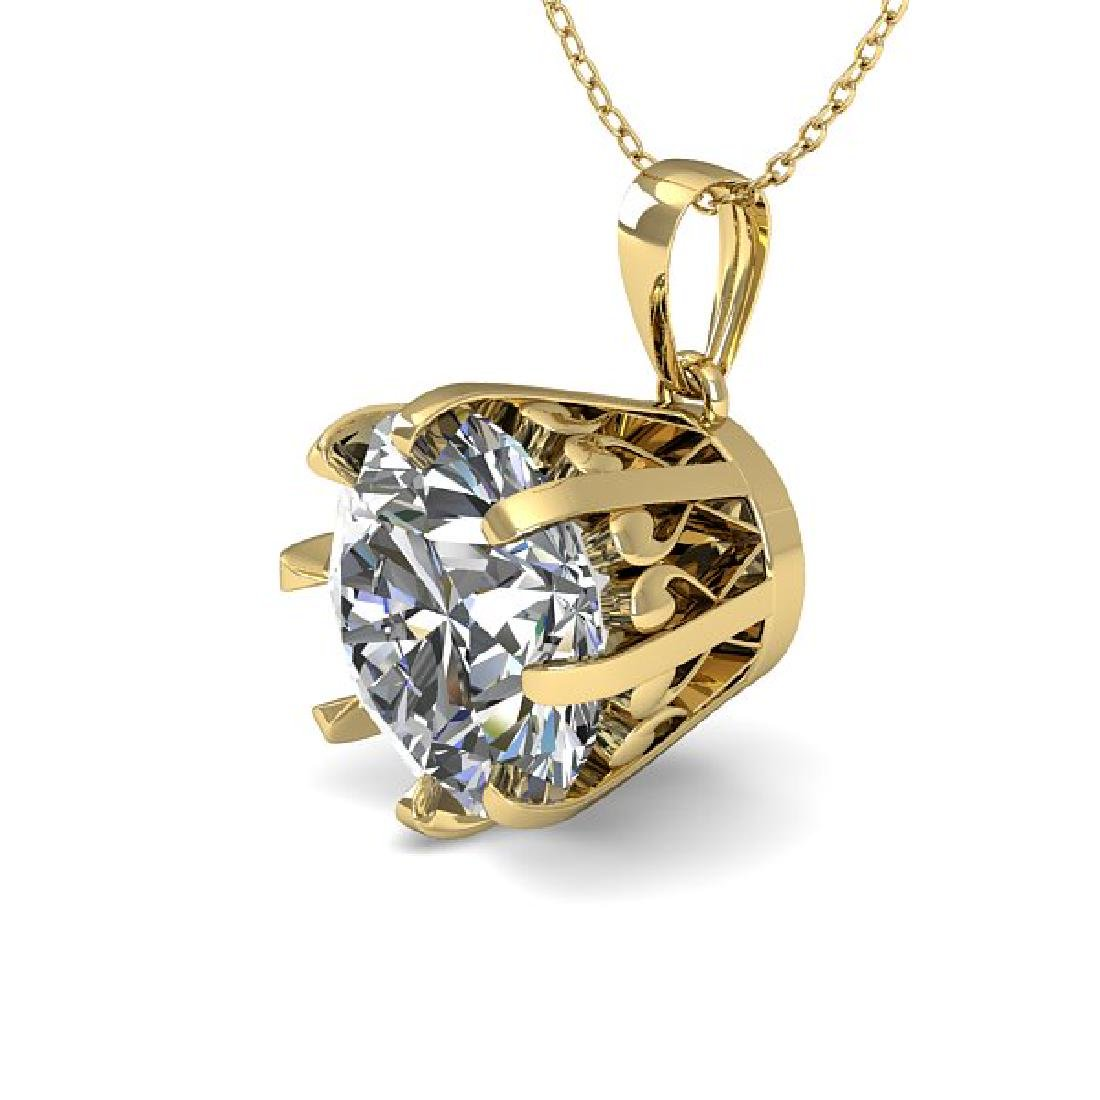 2 CTW VS/SI Diamond Solitaire Necklace 14K Yellow Gold